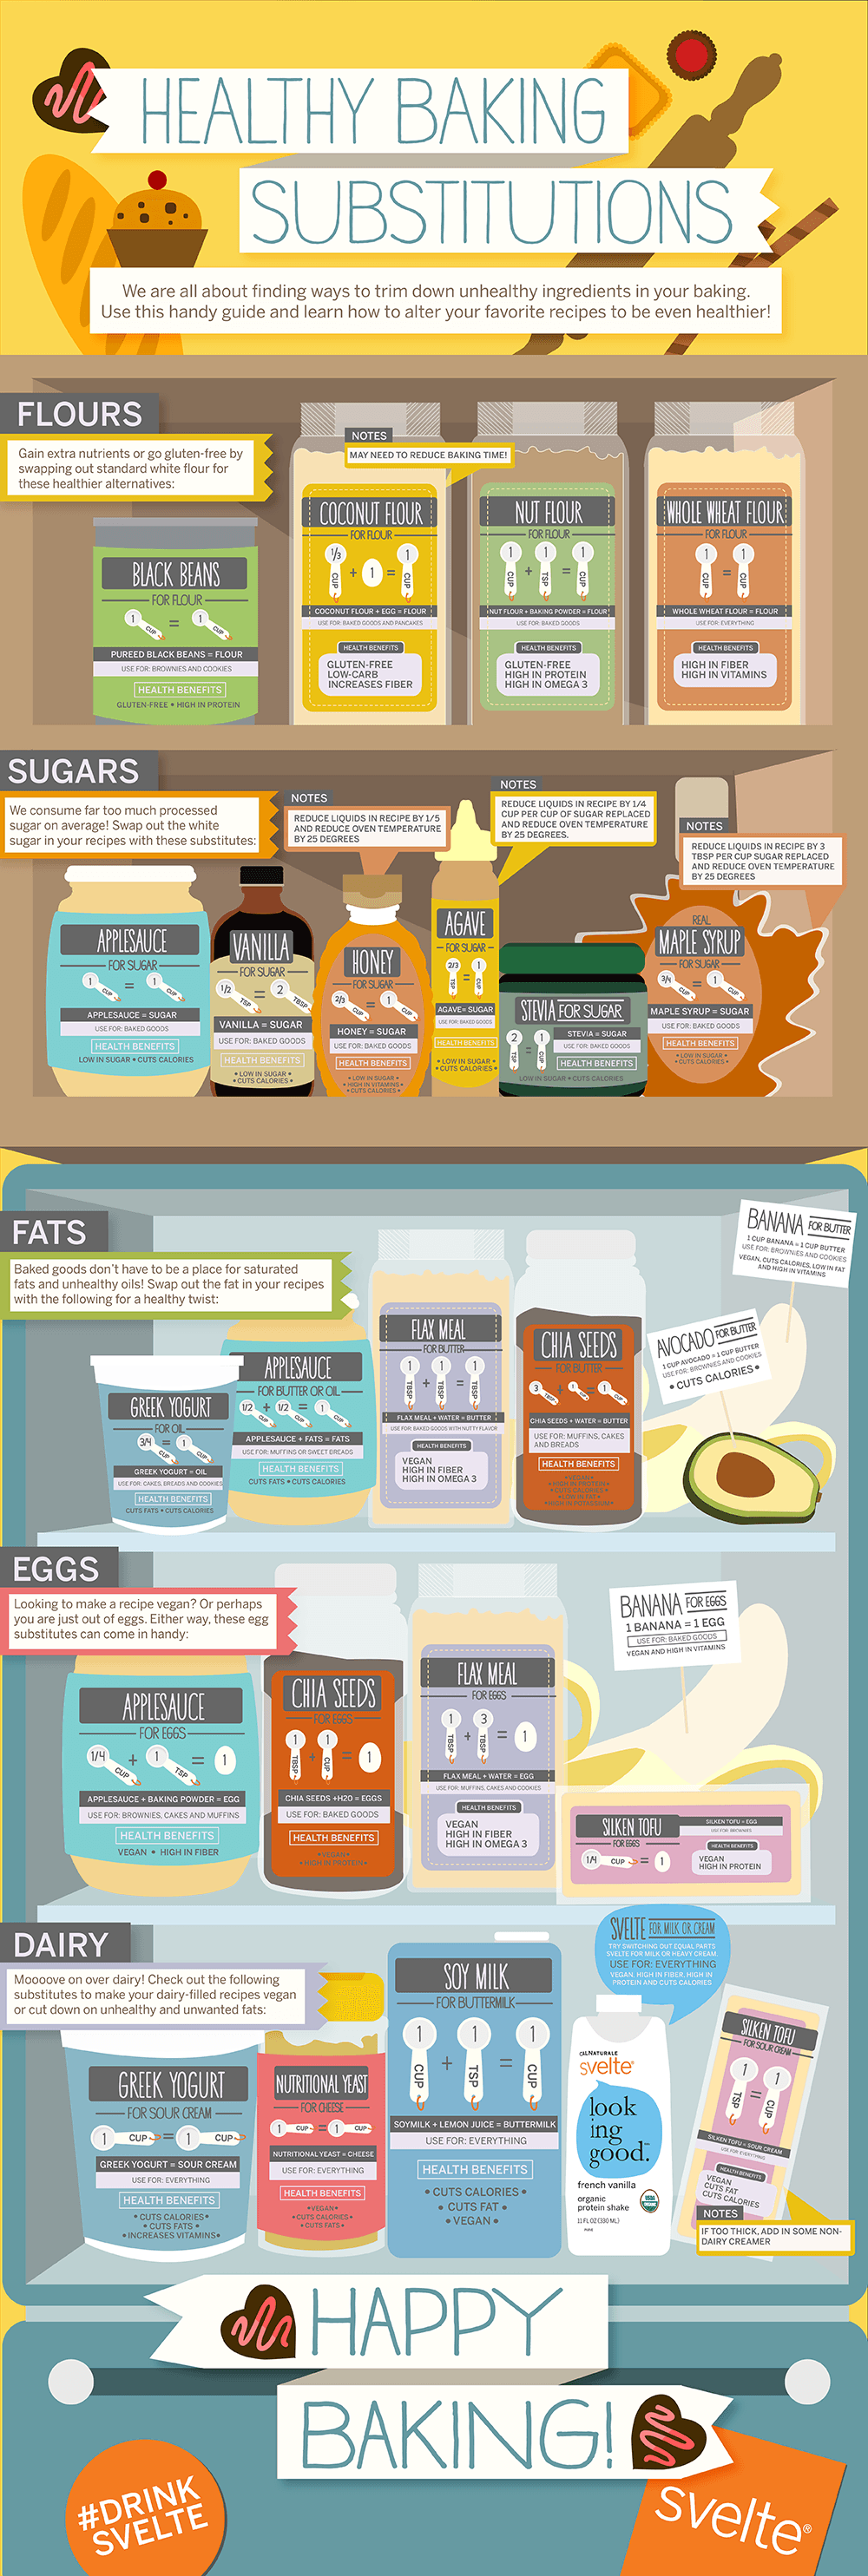 Everything You Need For Healthy Baking: The Best Flour, Sugar, Fat, Egg And Dairy Substitutions Infographic